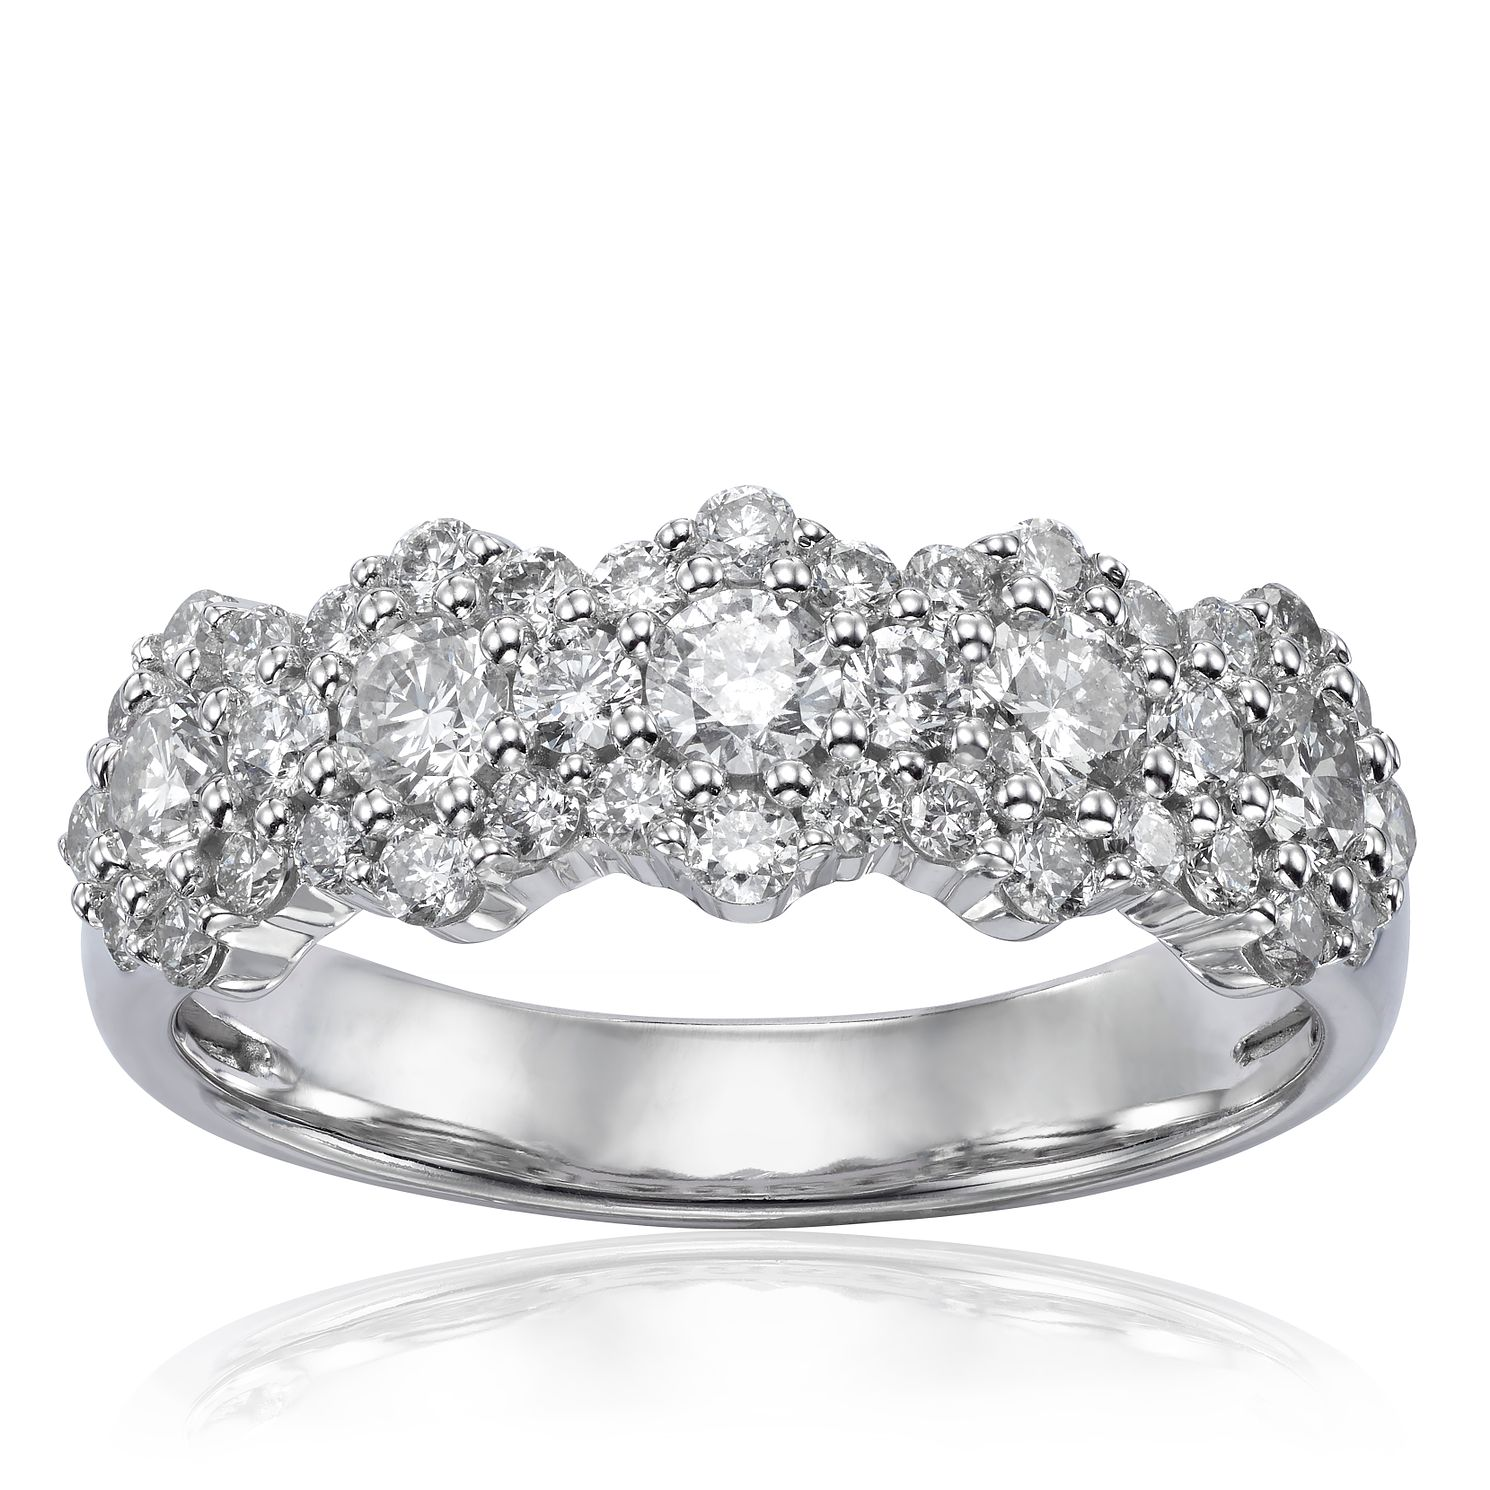 18ct White Gold 1ct Diamond Daisy Ring - Product number 1246496